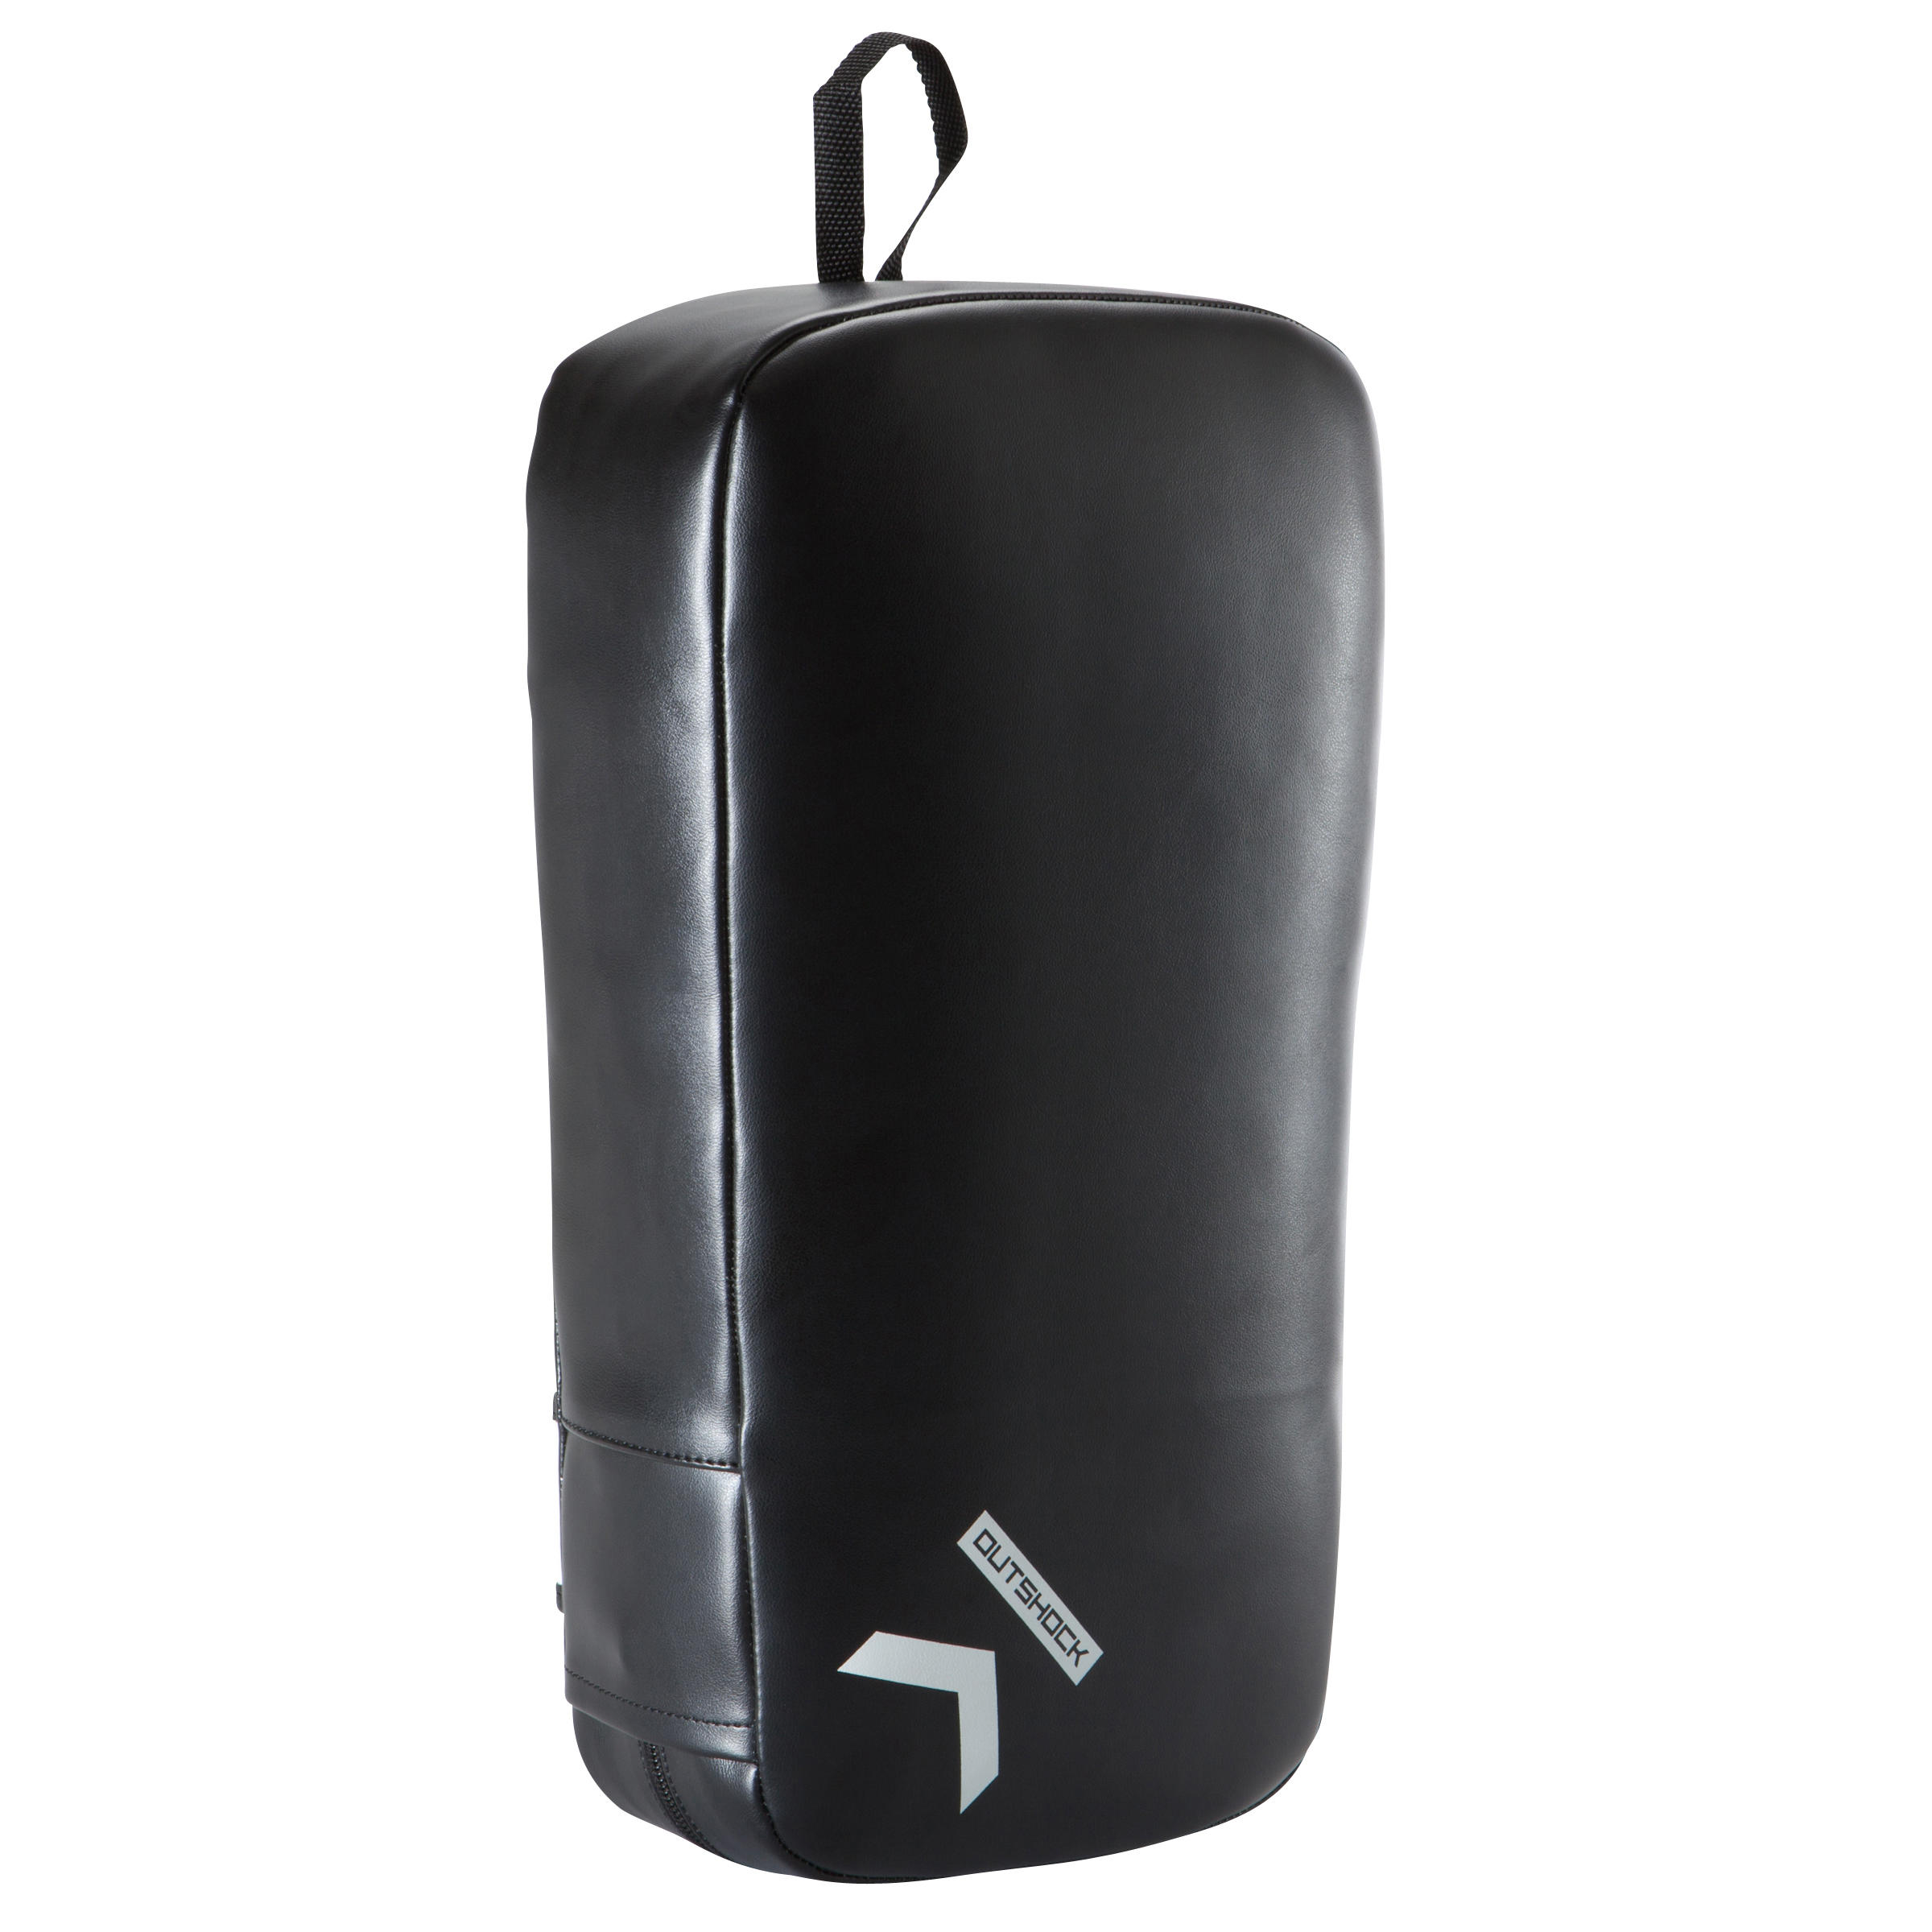 Boxing and Martial Arts Thai Pad - Black